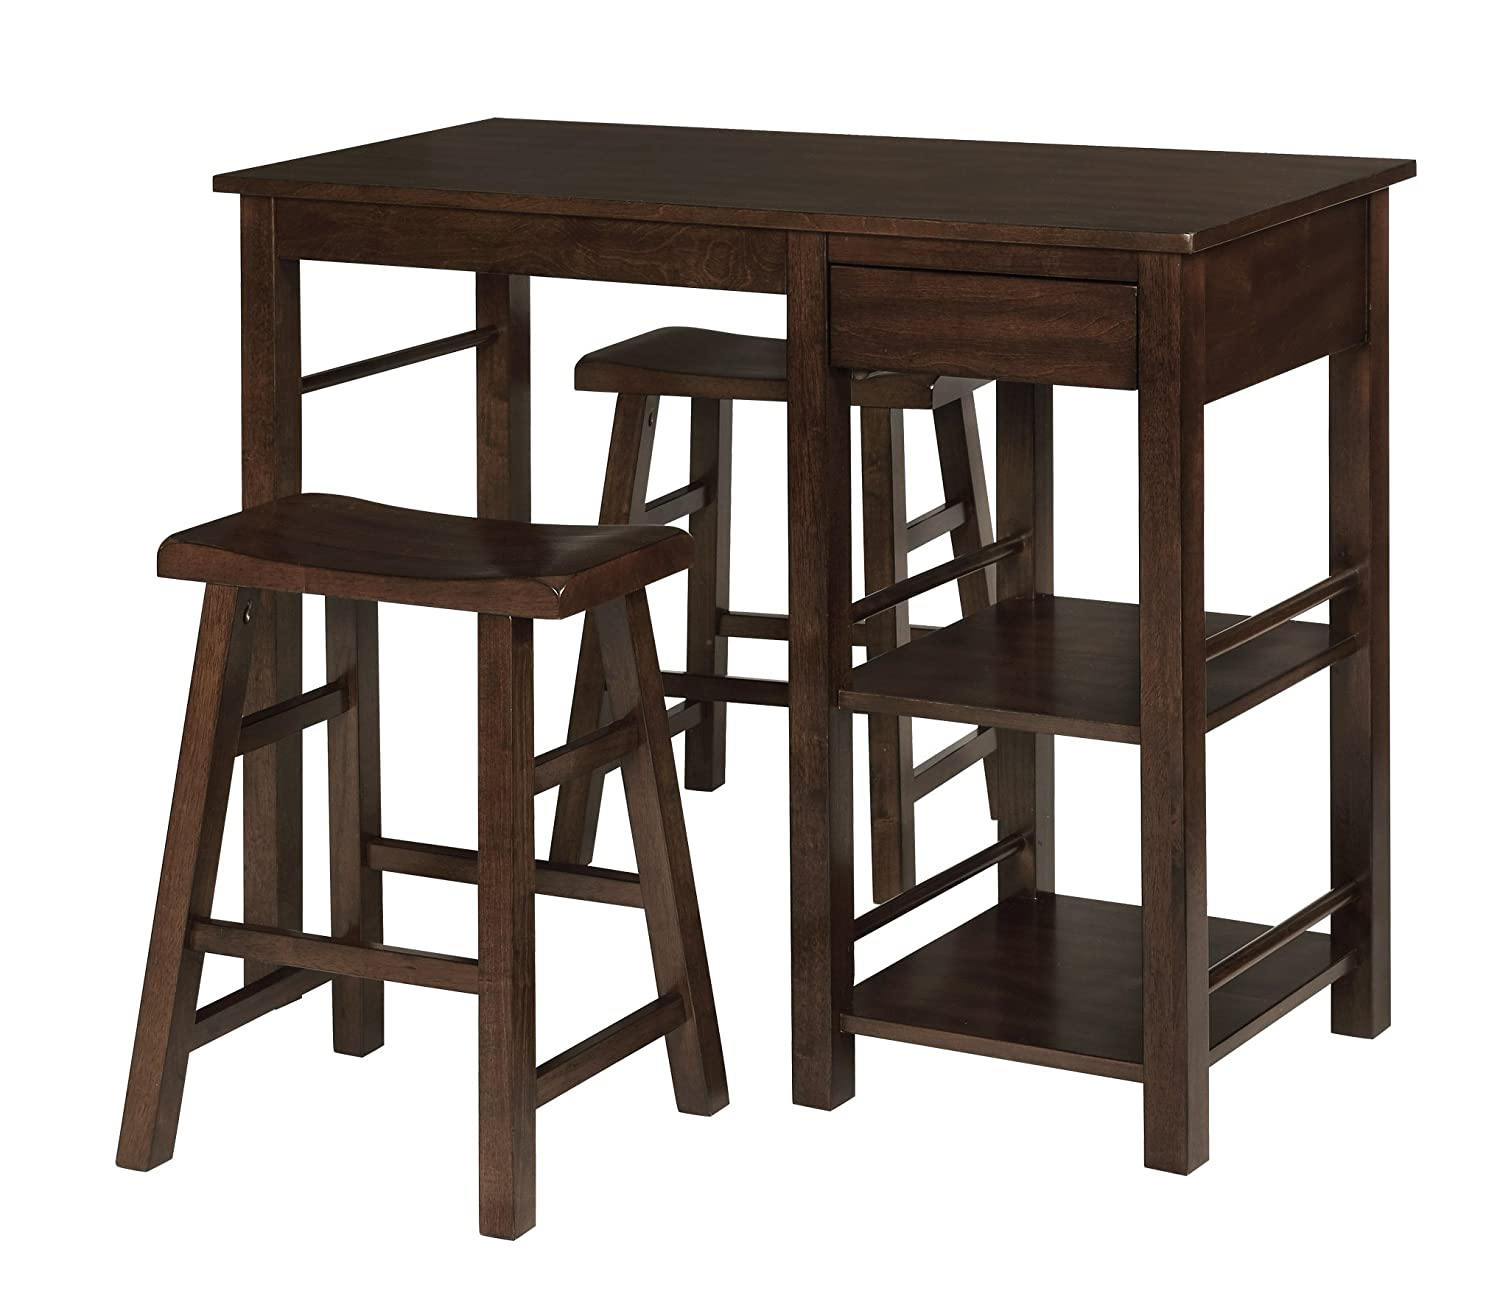 eHemco 3 Piece Counter Height Wood Breakfast Table with 2 Saddle Stools in Walnut